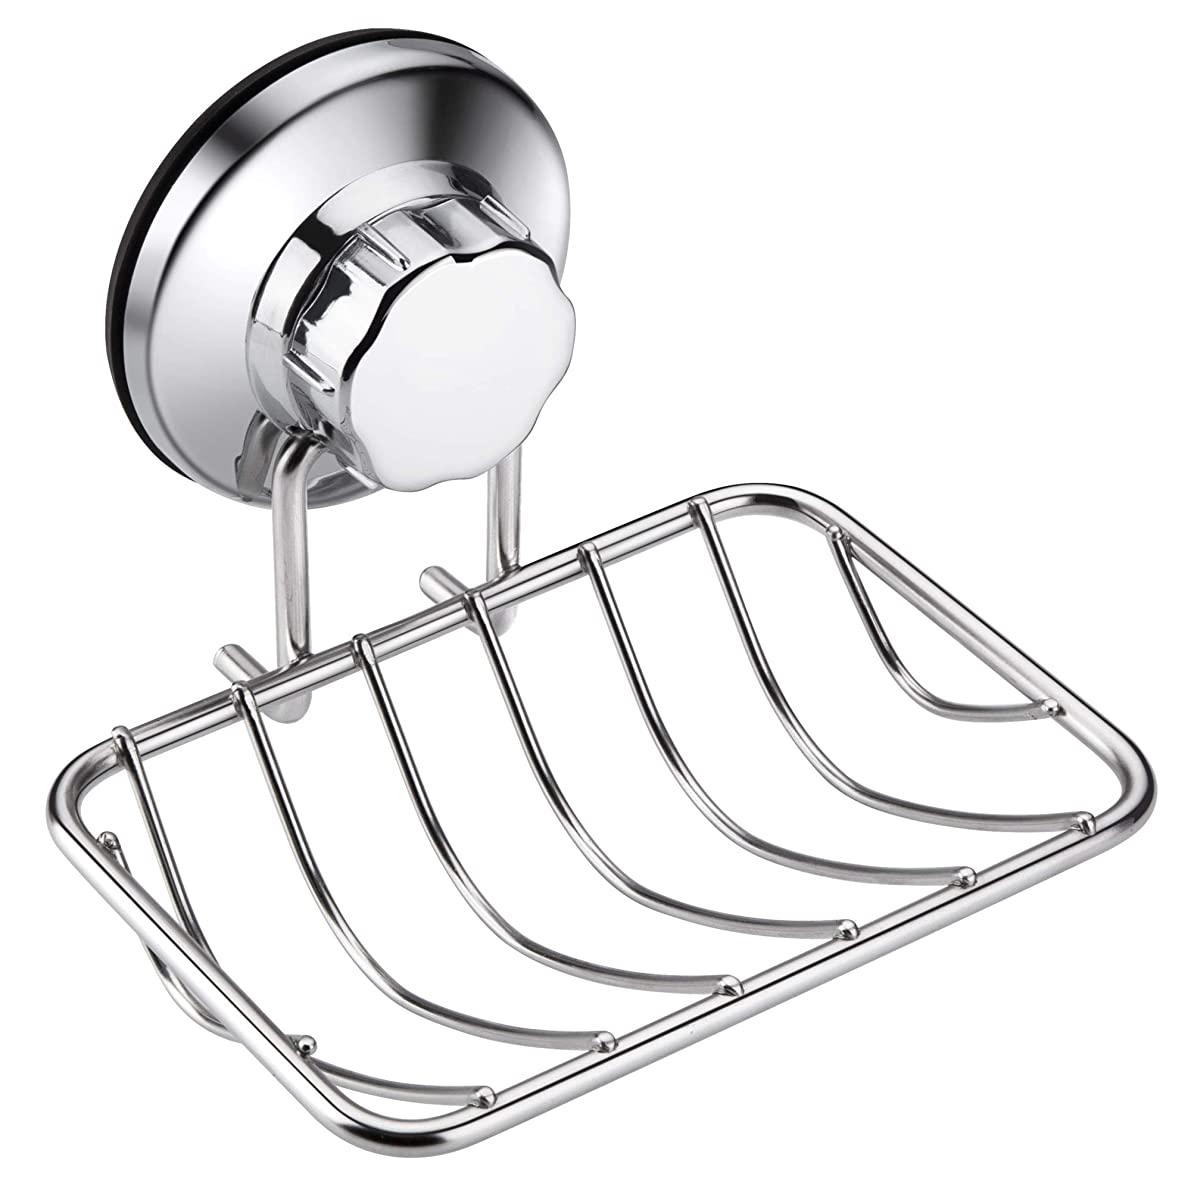 iPEGTOP Super Powerful Vacuum Suction Cup Shower Soap Dish - Strong Rustproof Stainless Steel Sponge Soap Holder for Bathroom & Kitchen Sink